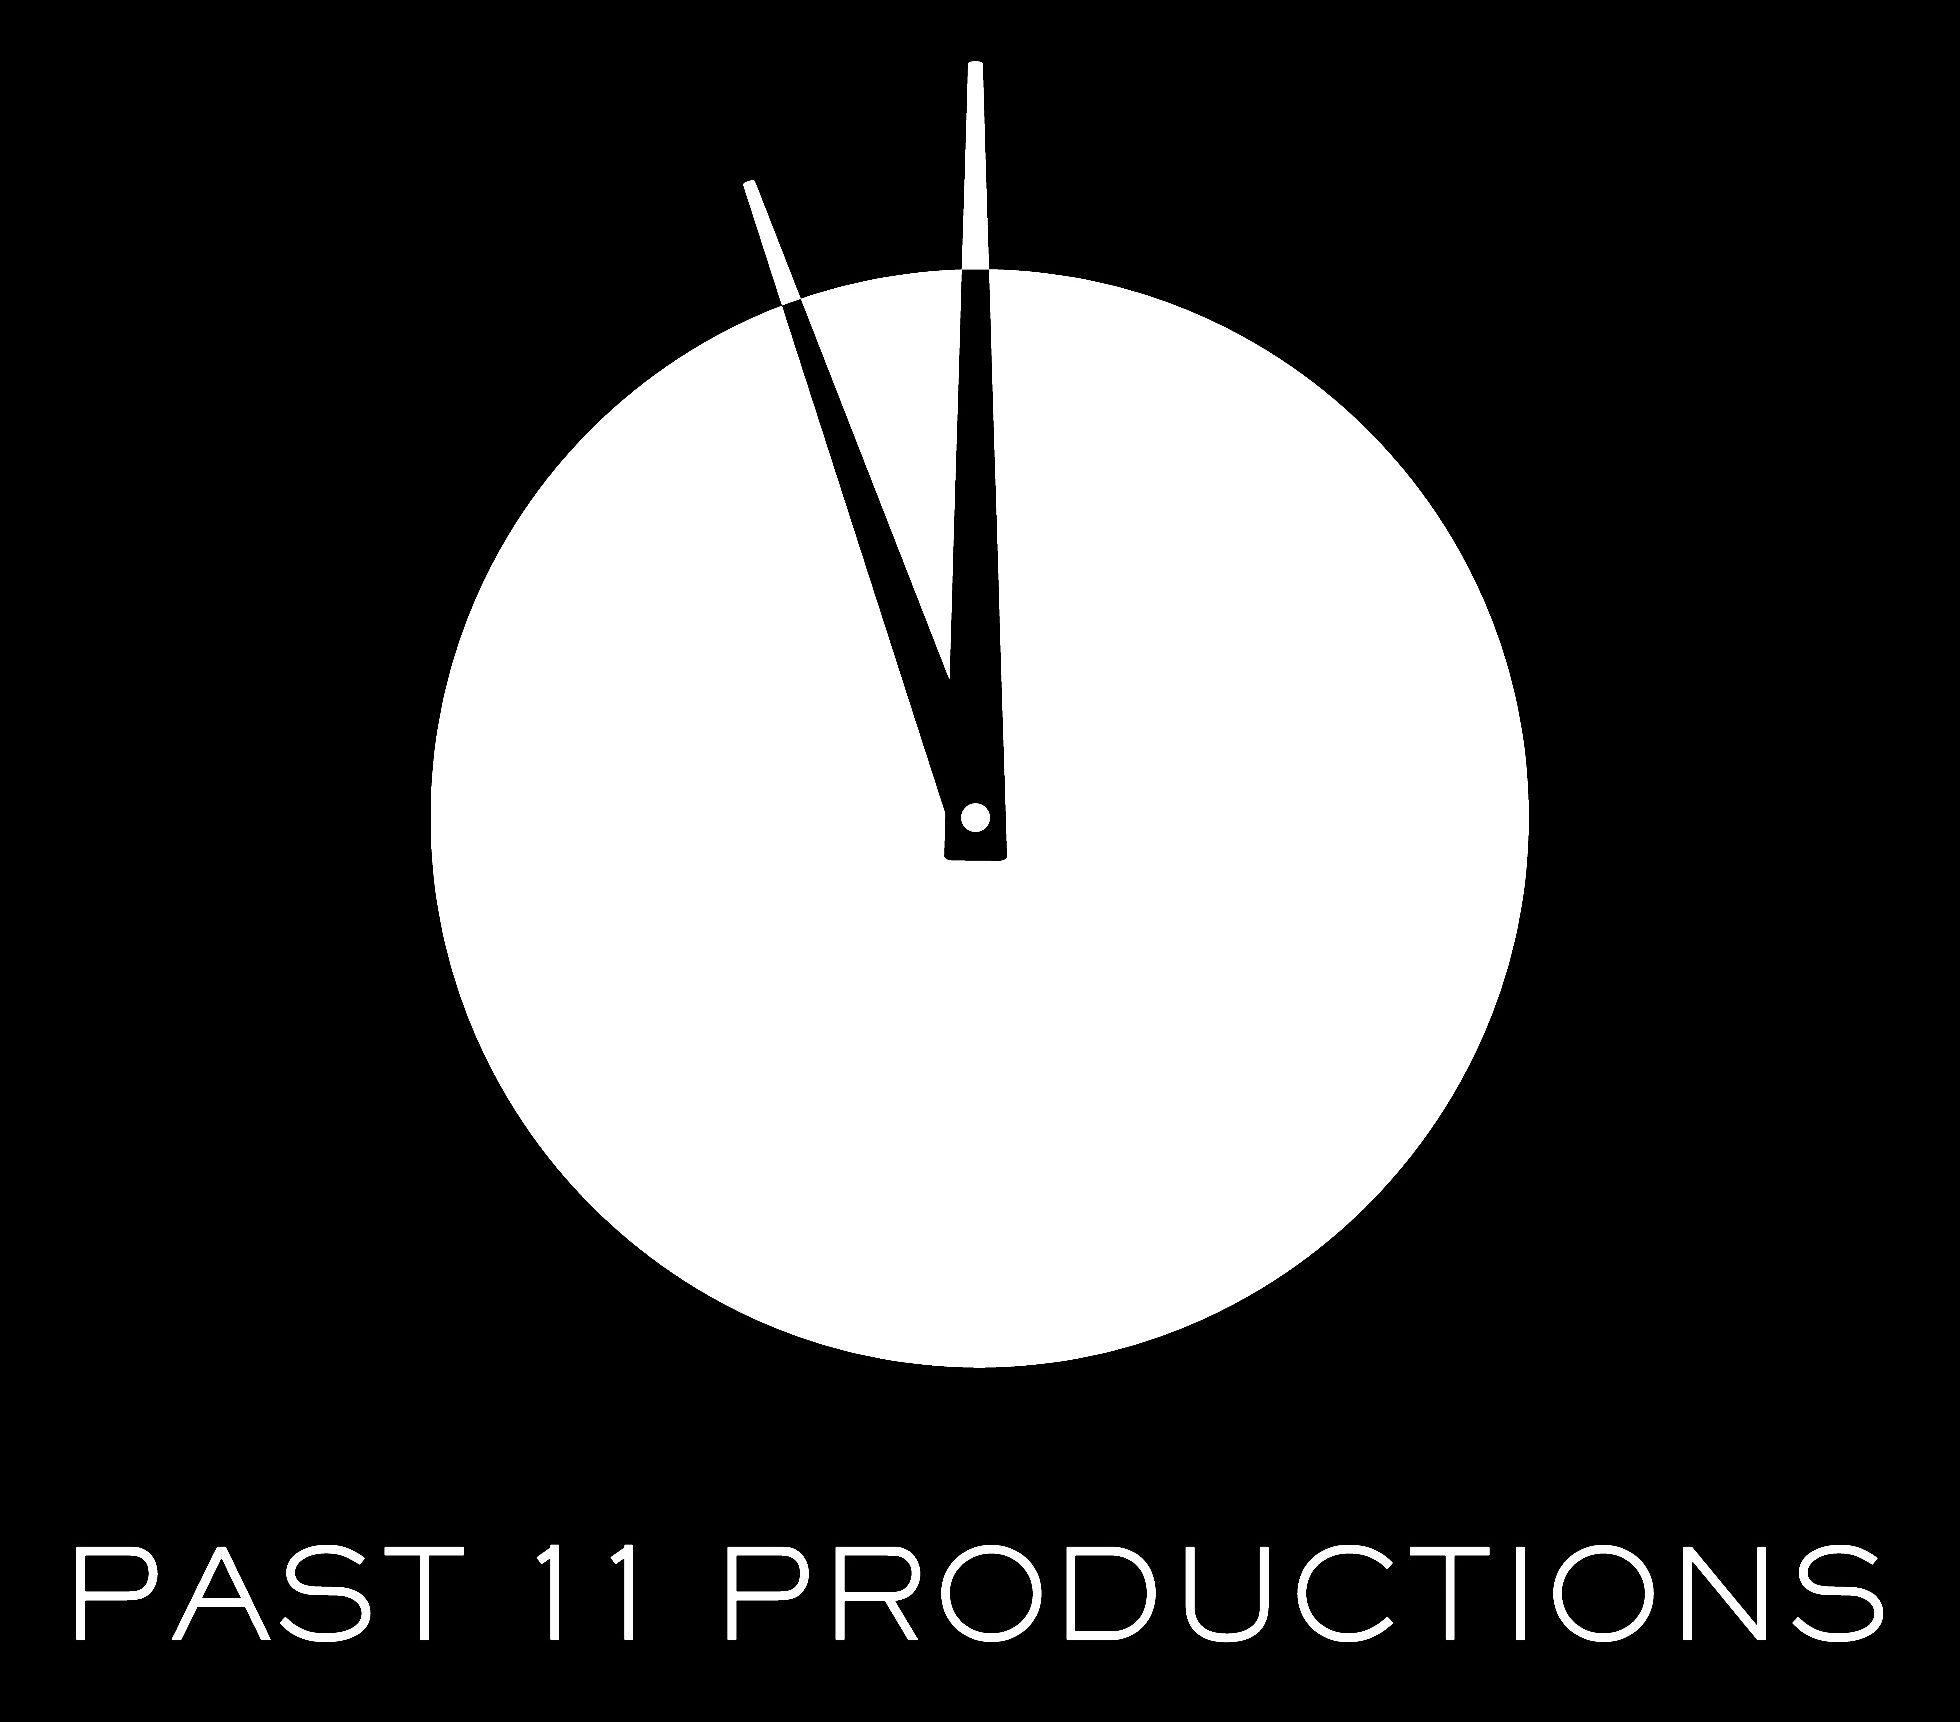 Past 11 Productions